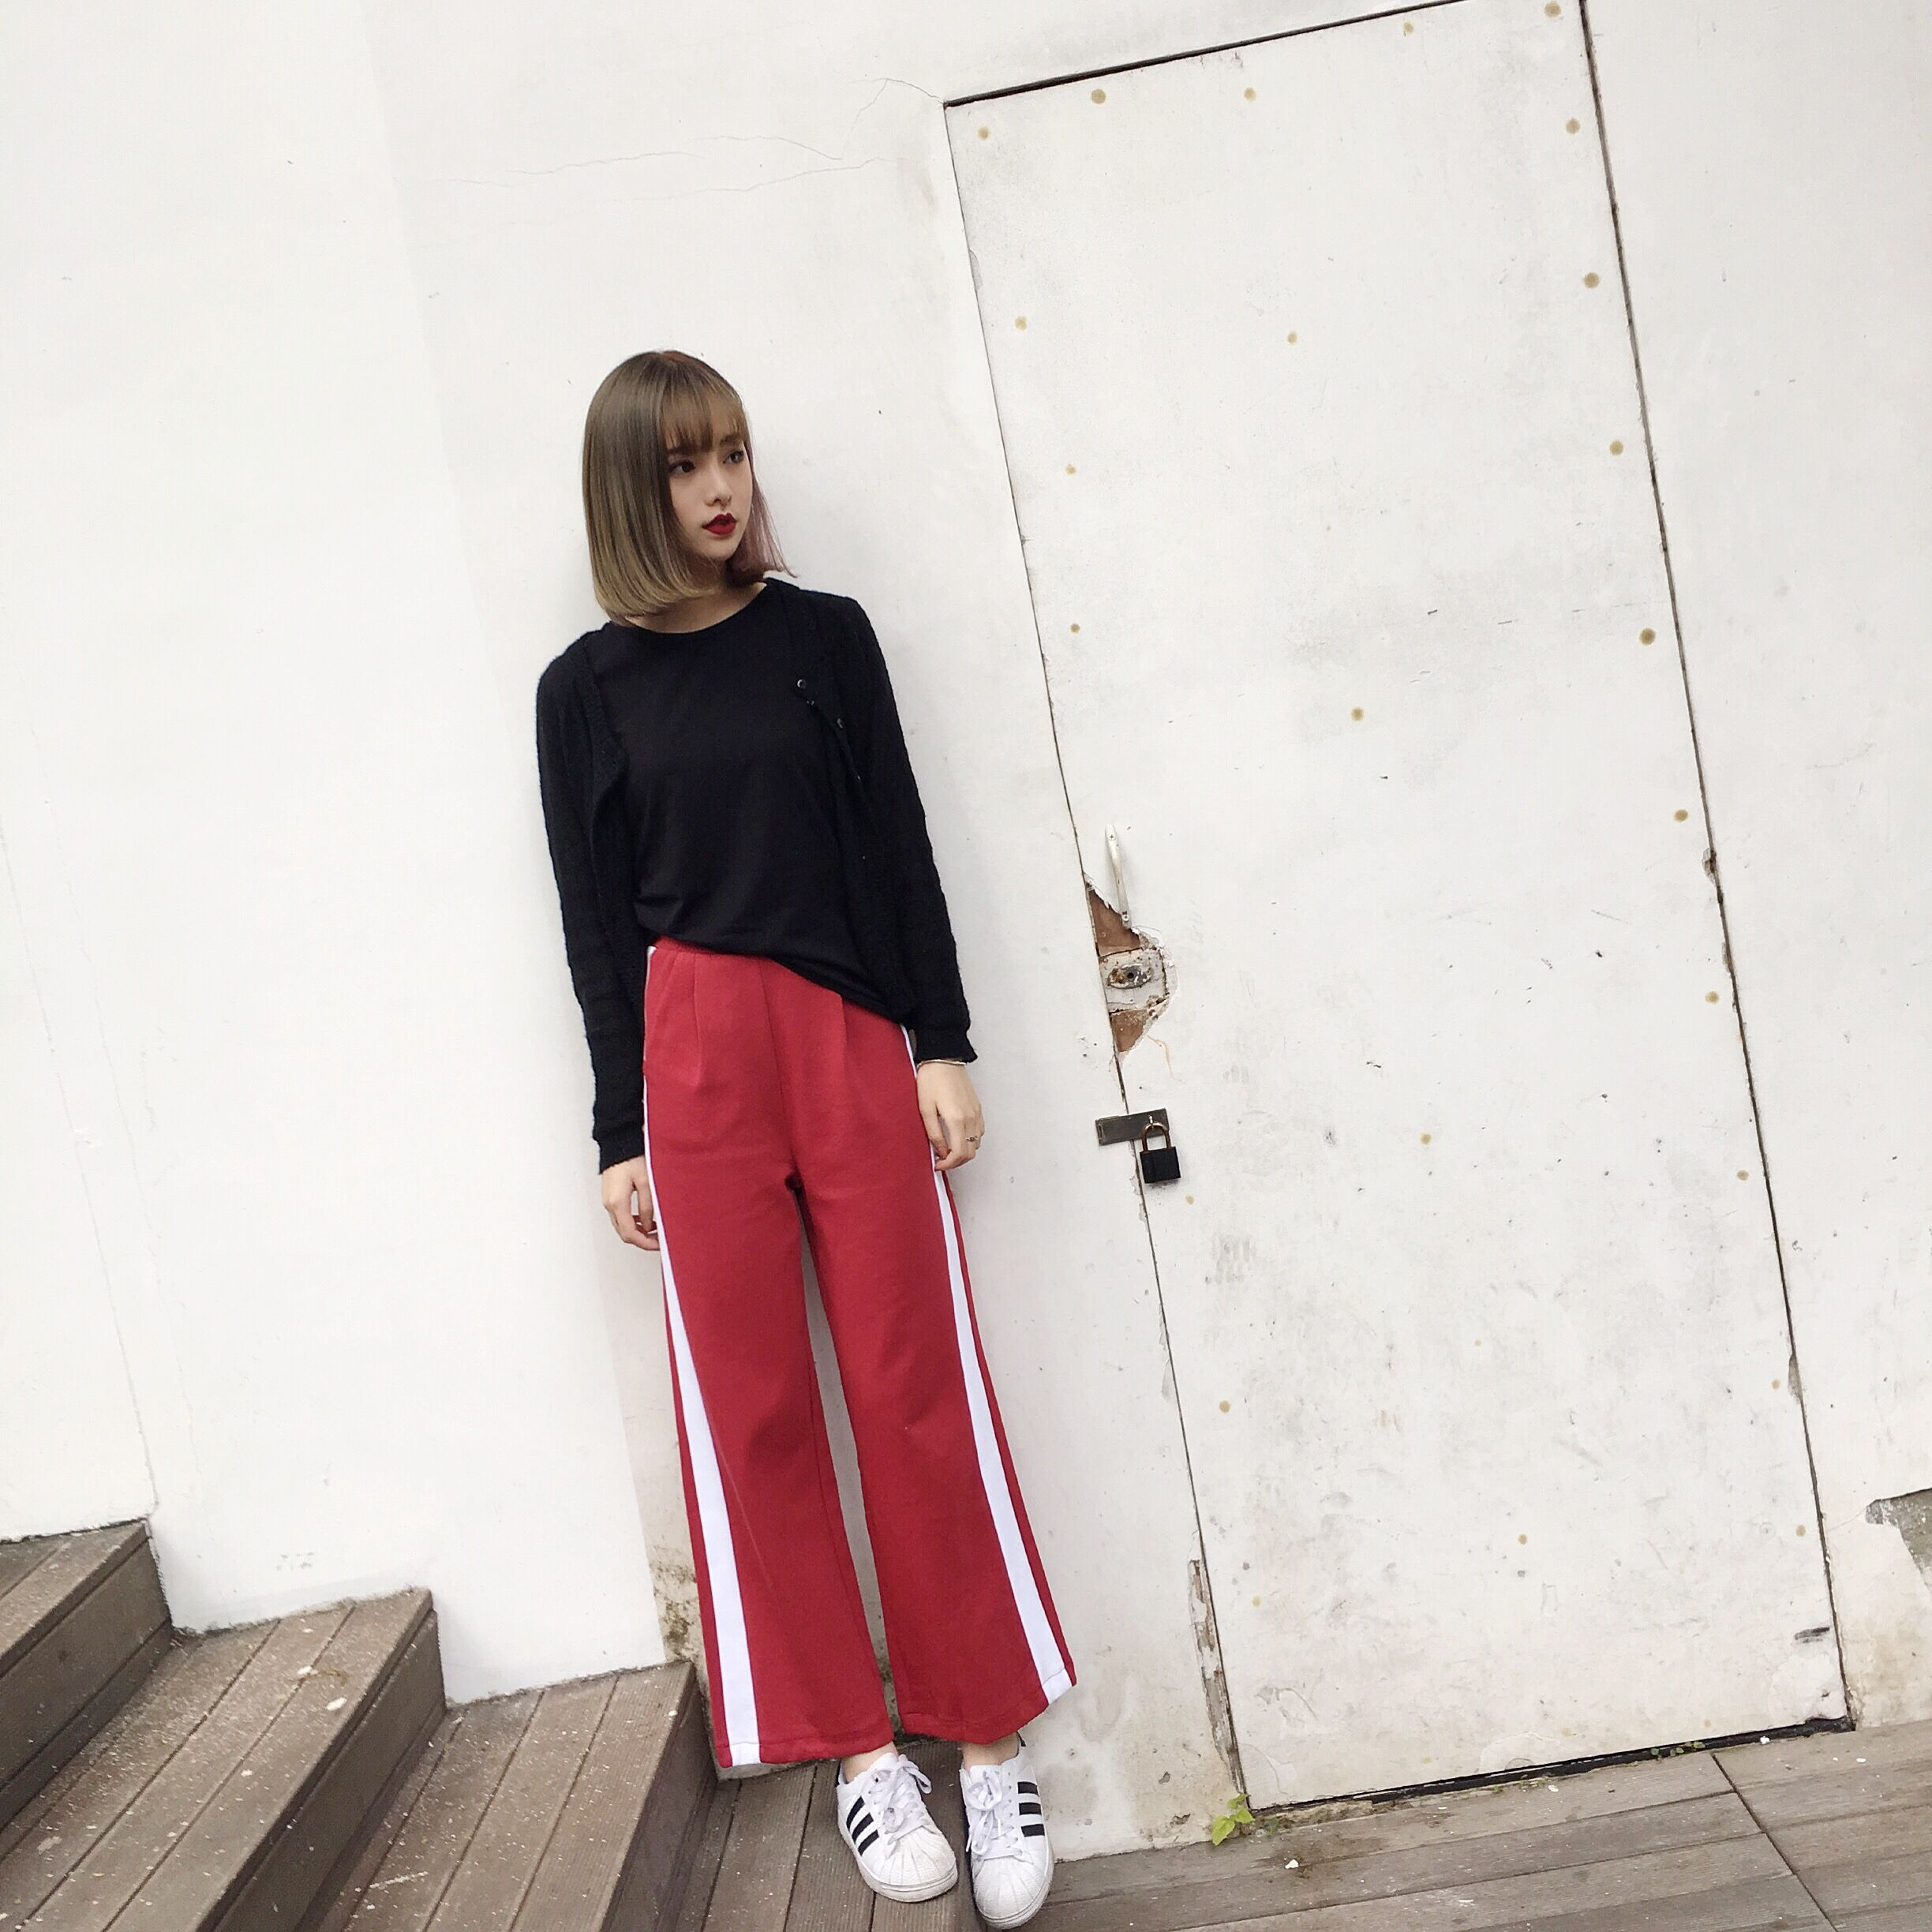 May123 Store Hunter-wish Texture Of The Knitted Fabric Pants White Spine On Both Sides Of The Waist With  PocketS